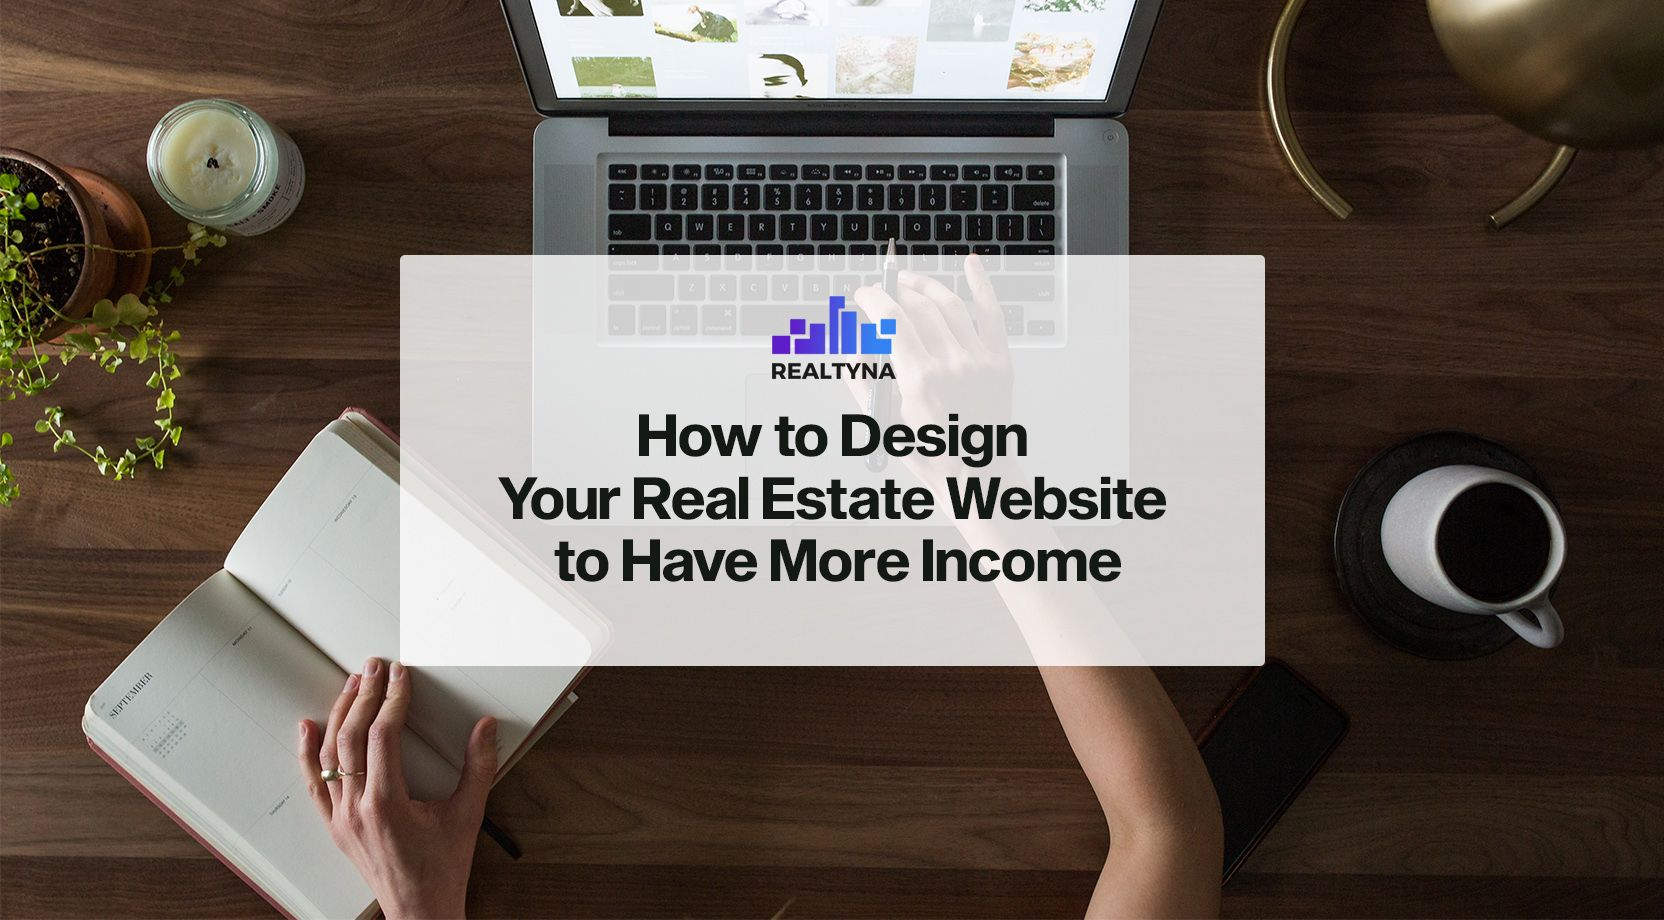 How to Design Your Real Estate Website to Have More Income